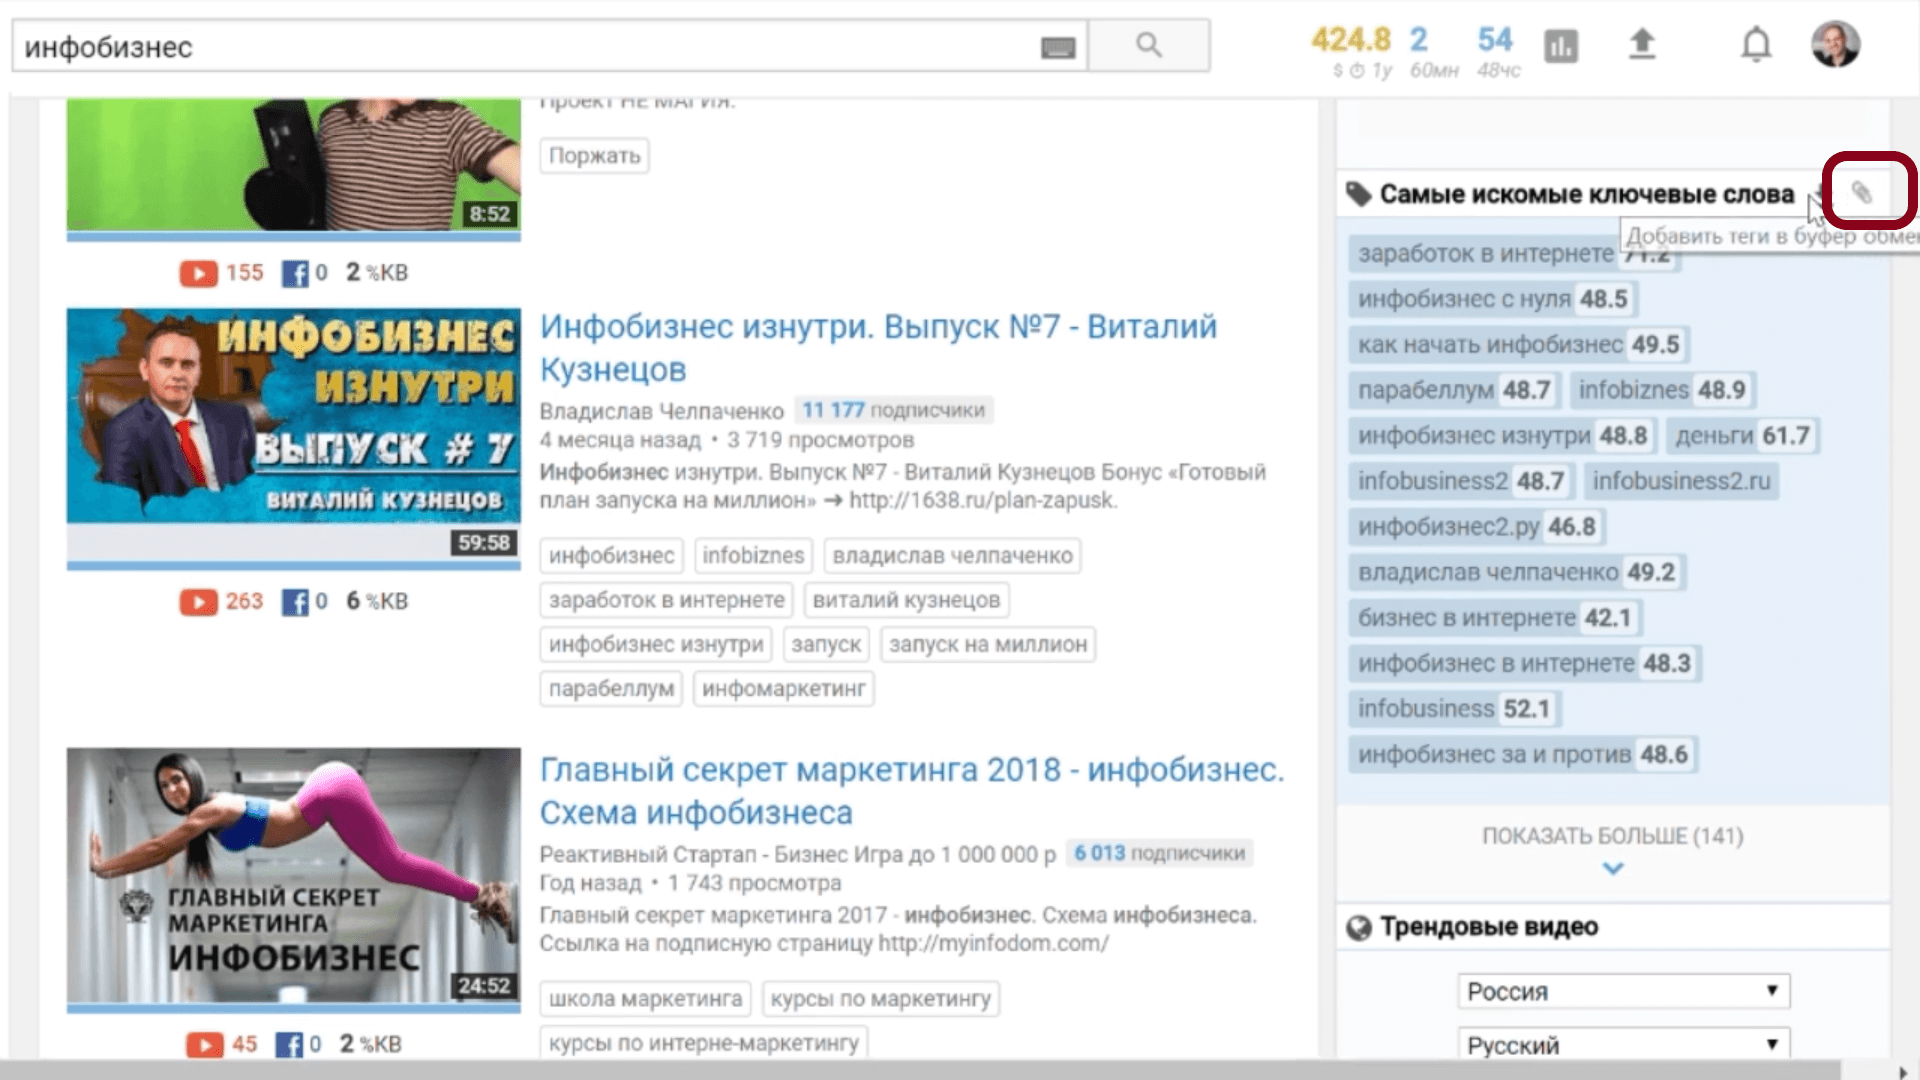 как оптимизировать видео для youtube, seo оптимизация видео на youtube